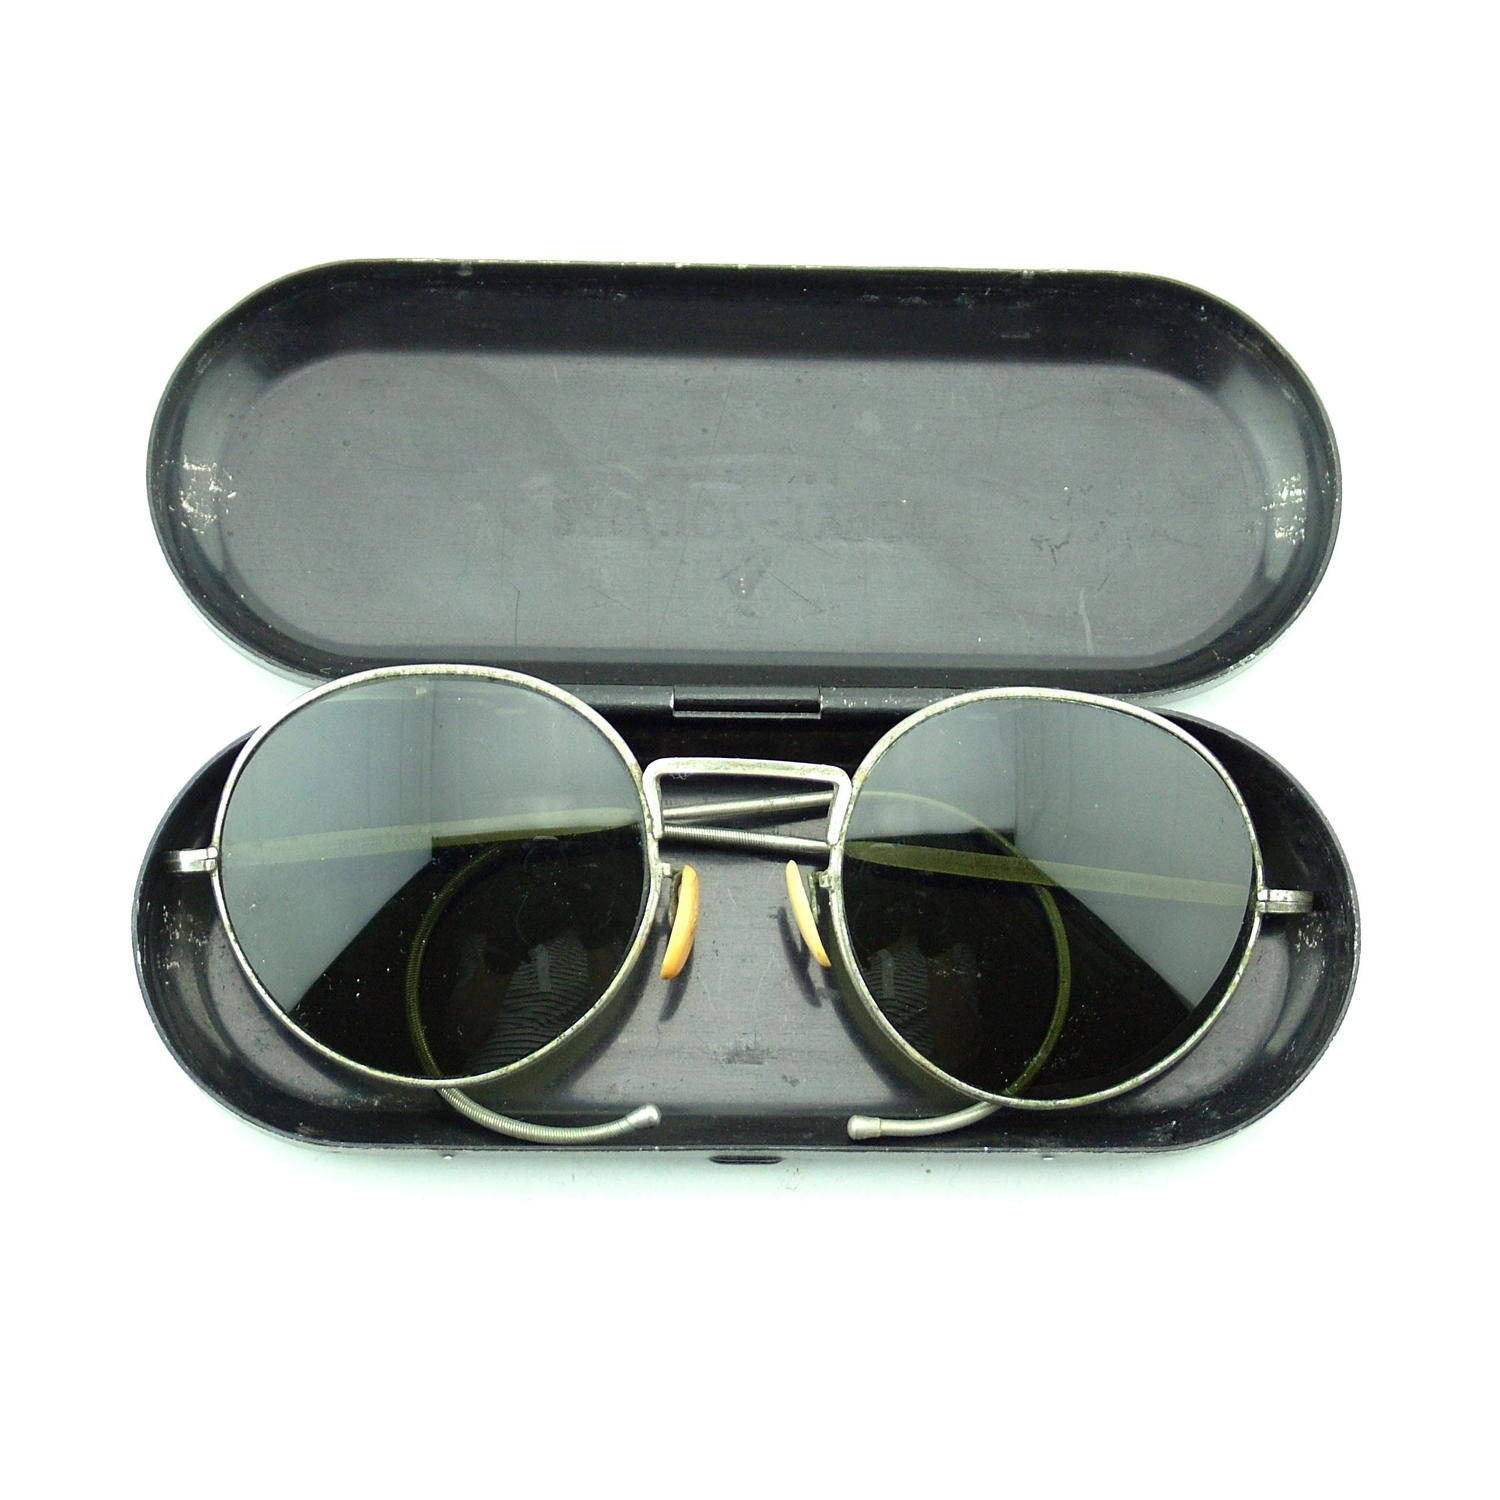 RAF sunglasses, type F, cased